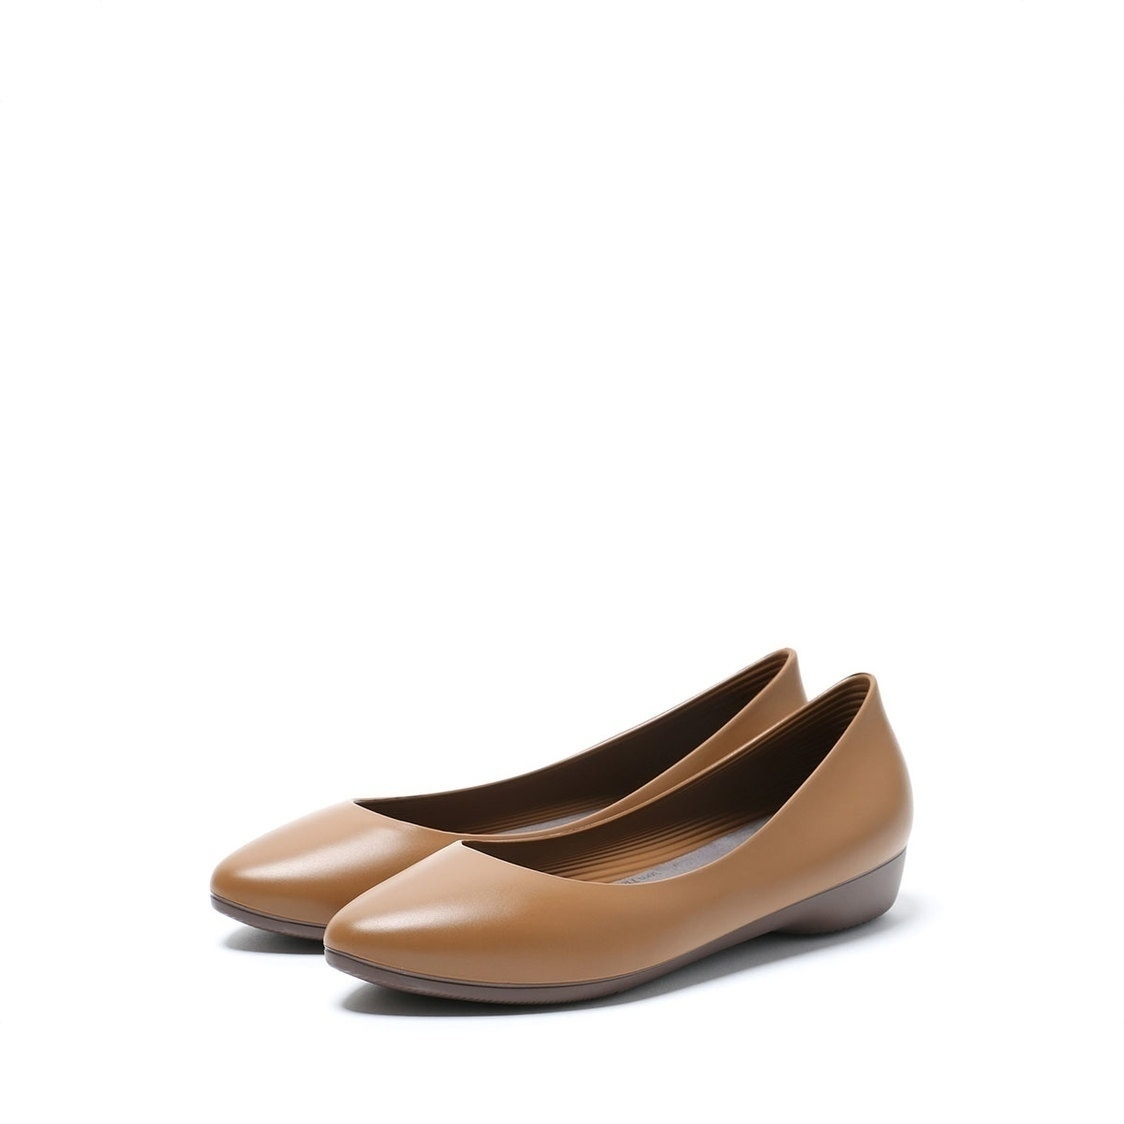 F3 Flat-Pointed Heel height 3cm Camel Brown